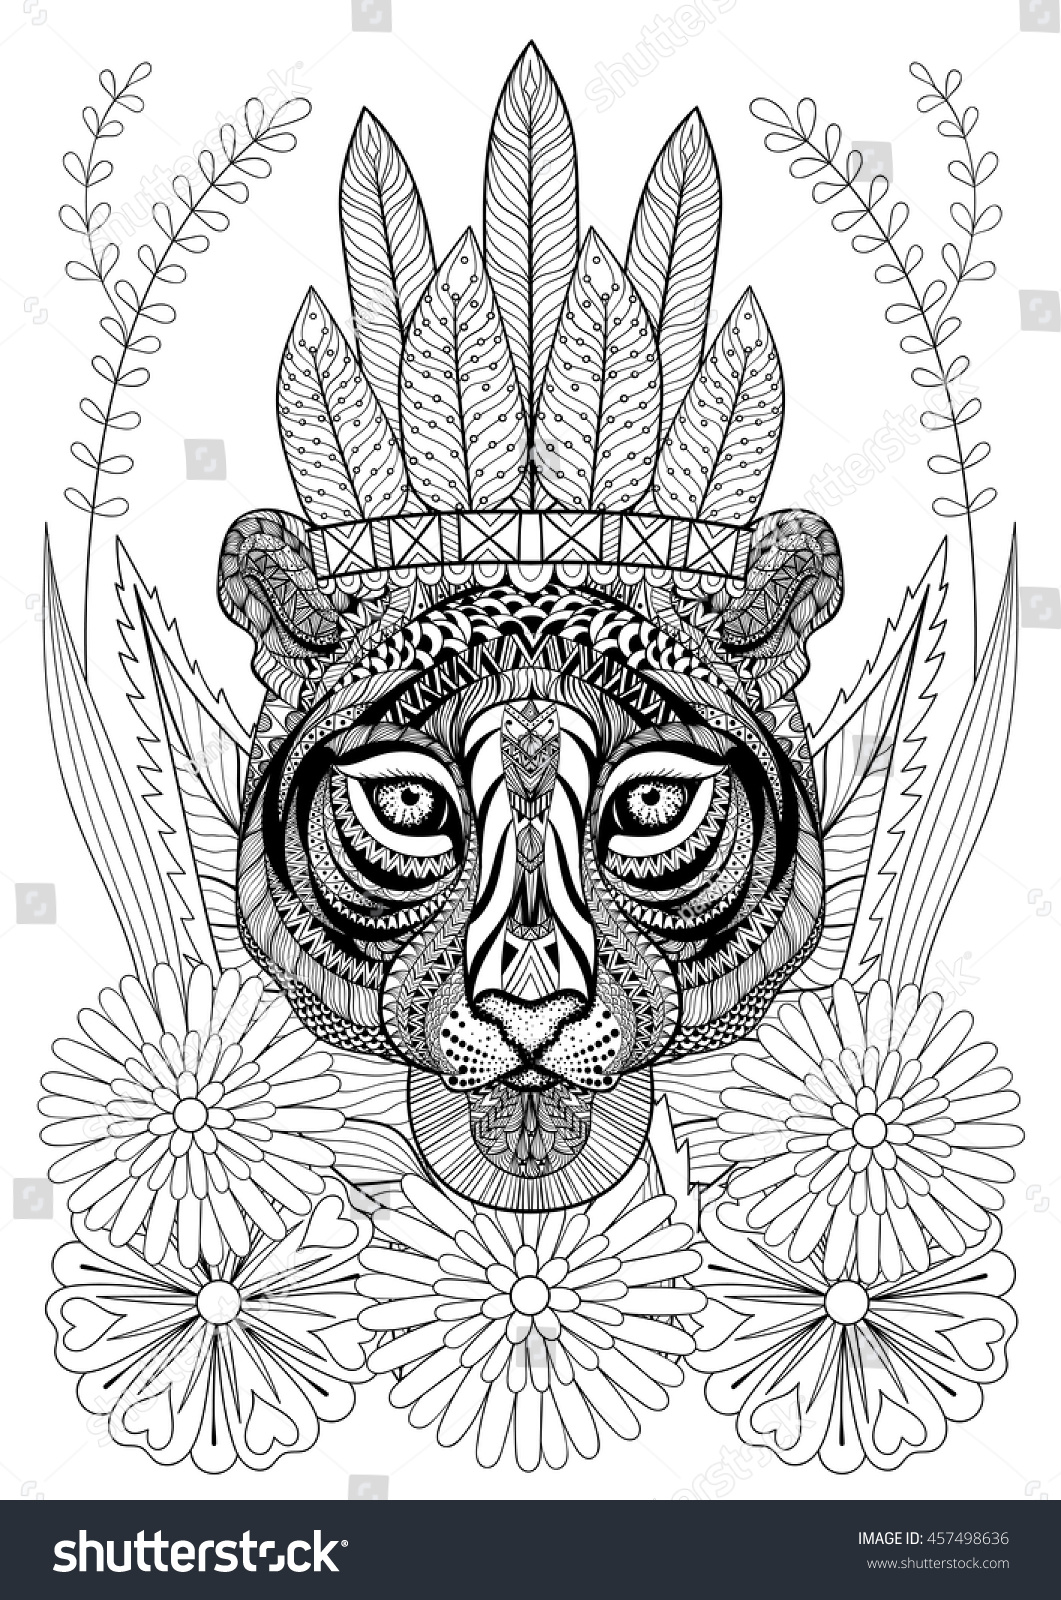 Zentangle Stylized Tiger With War Bonnet On Flowers Hand Drawn Ethnic Animal For Adult Coloring Page Therapy Boho T Shirt Patterned Print Posters